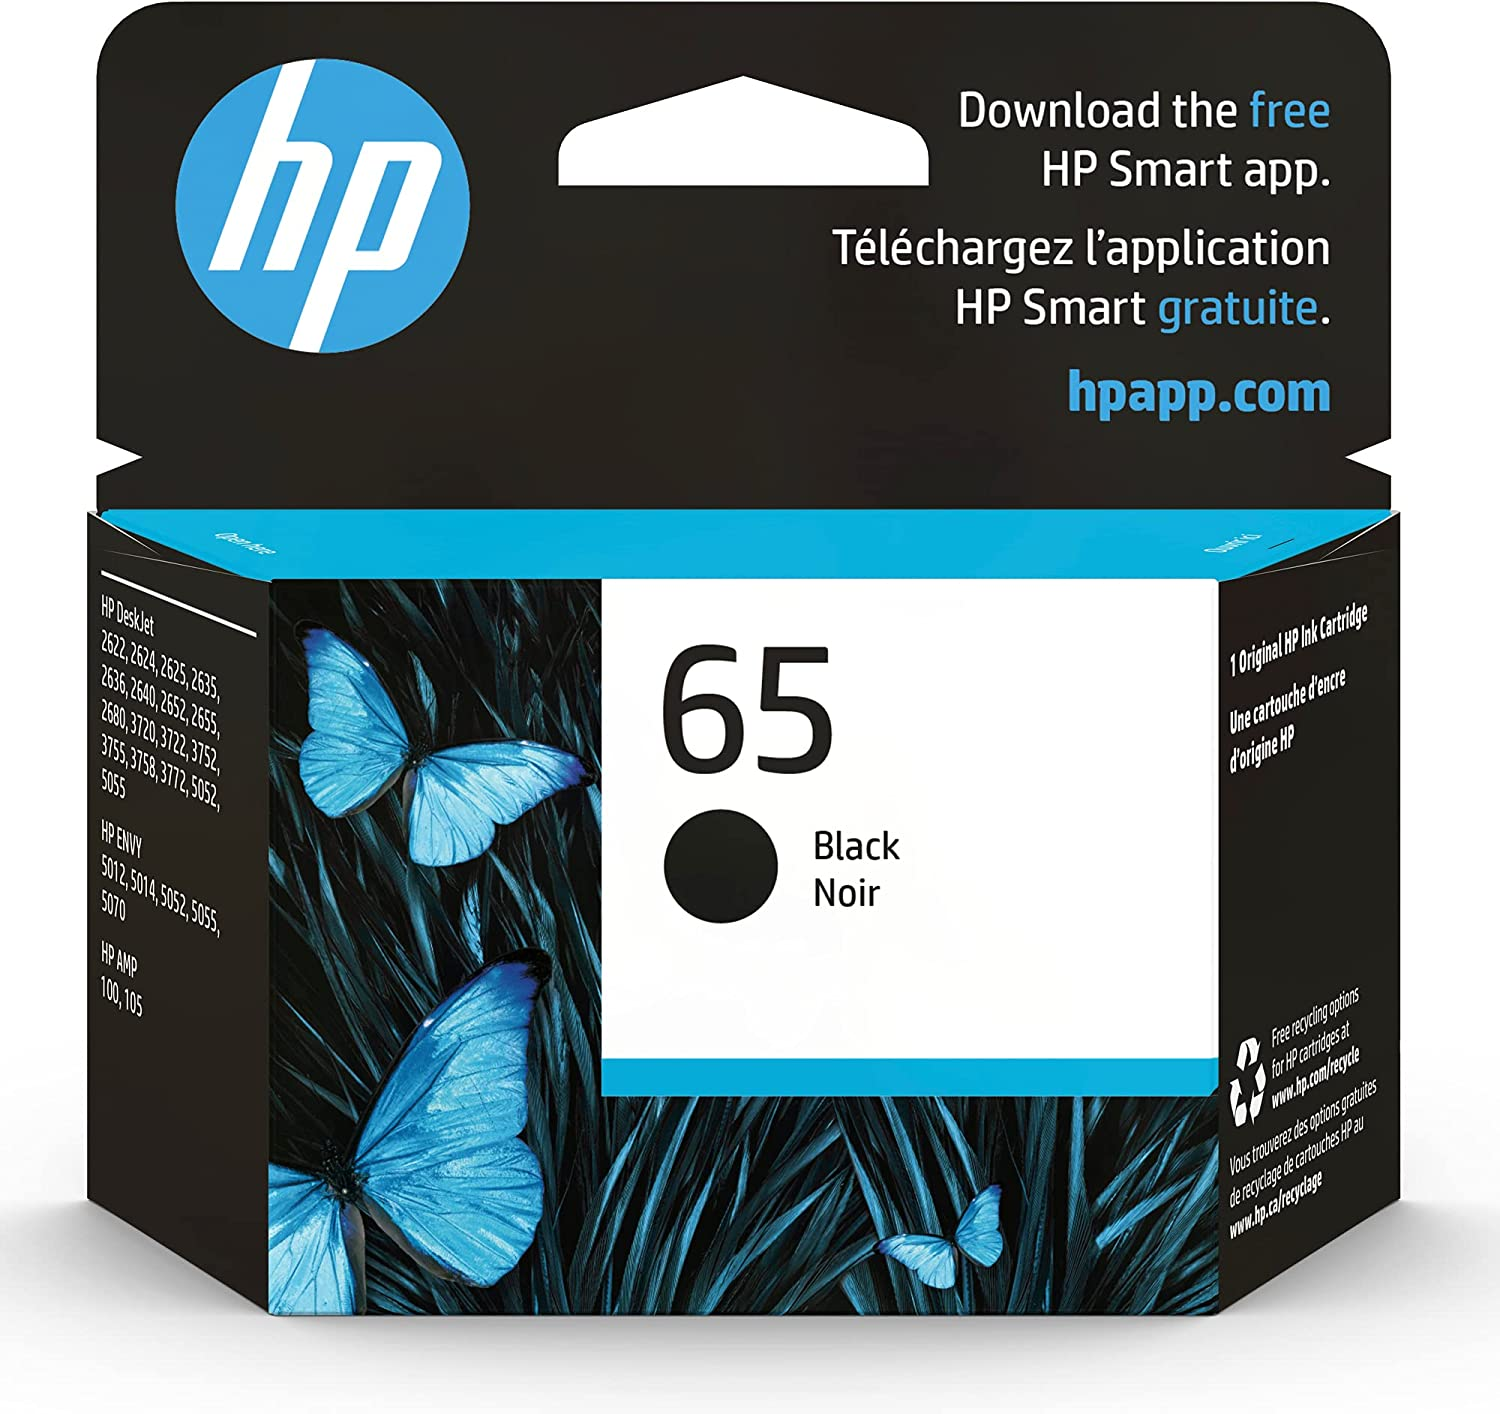 Original HP 65 Black Ink Cartridge Works 100 with Serie Oakland Mall AMP Max 82% OFF